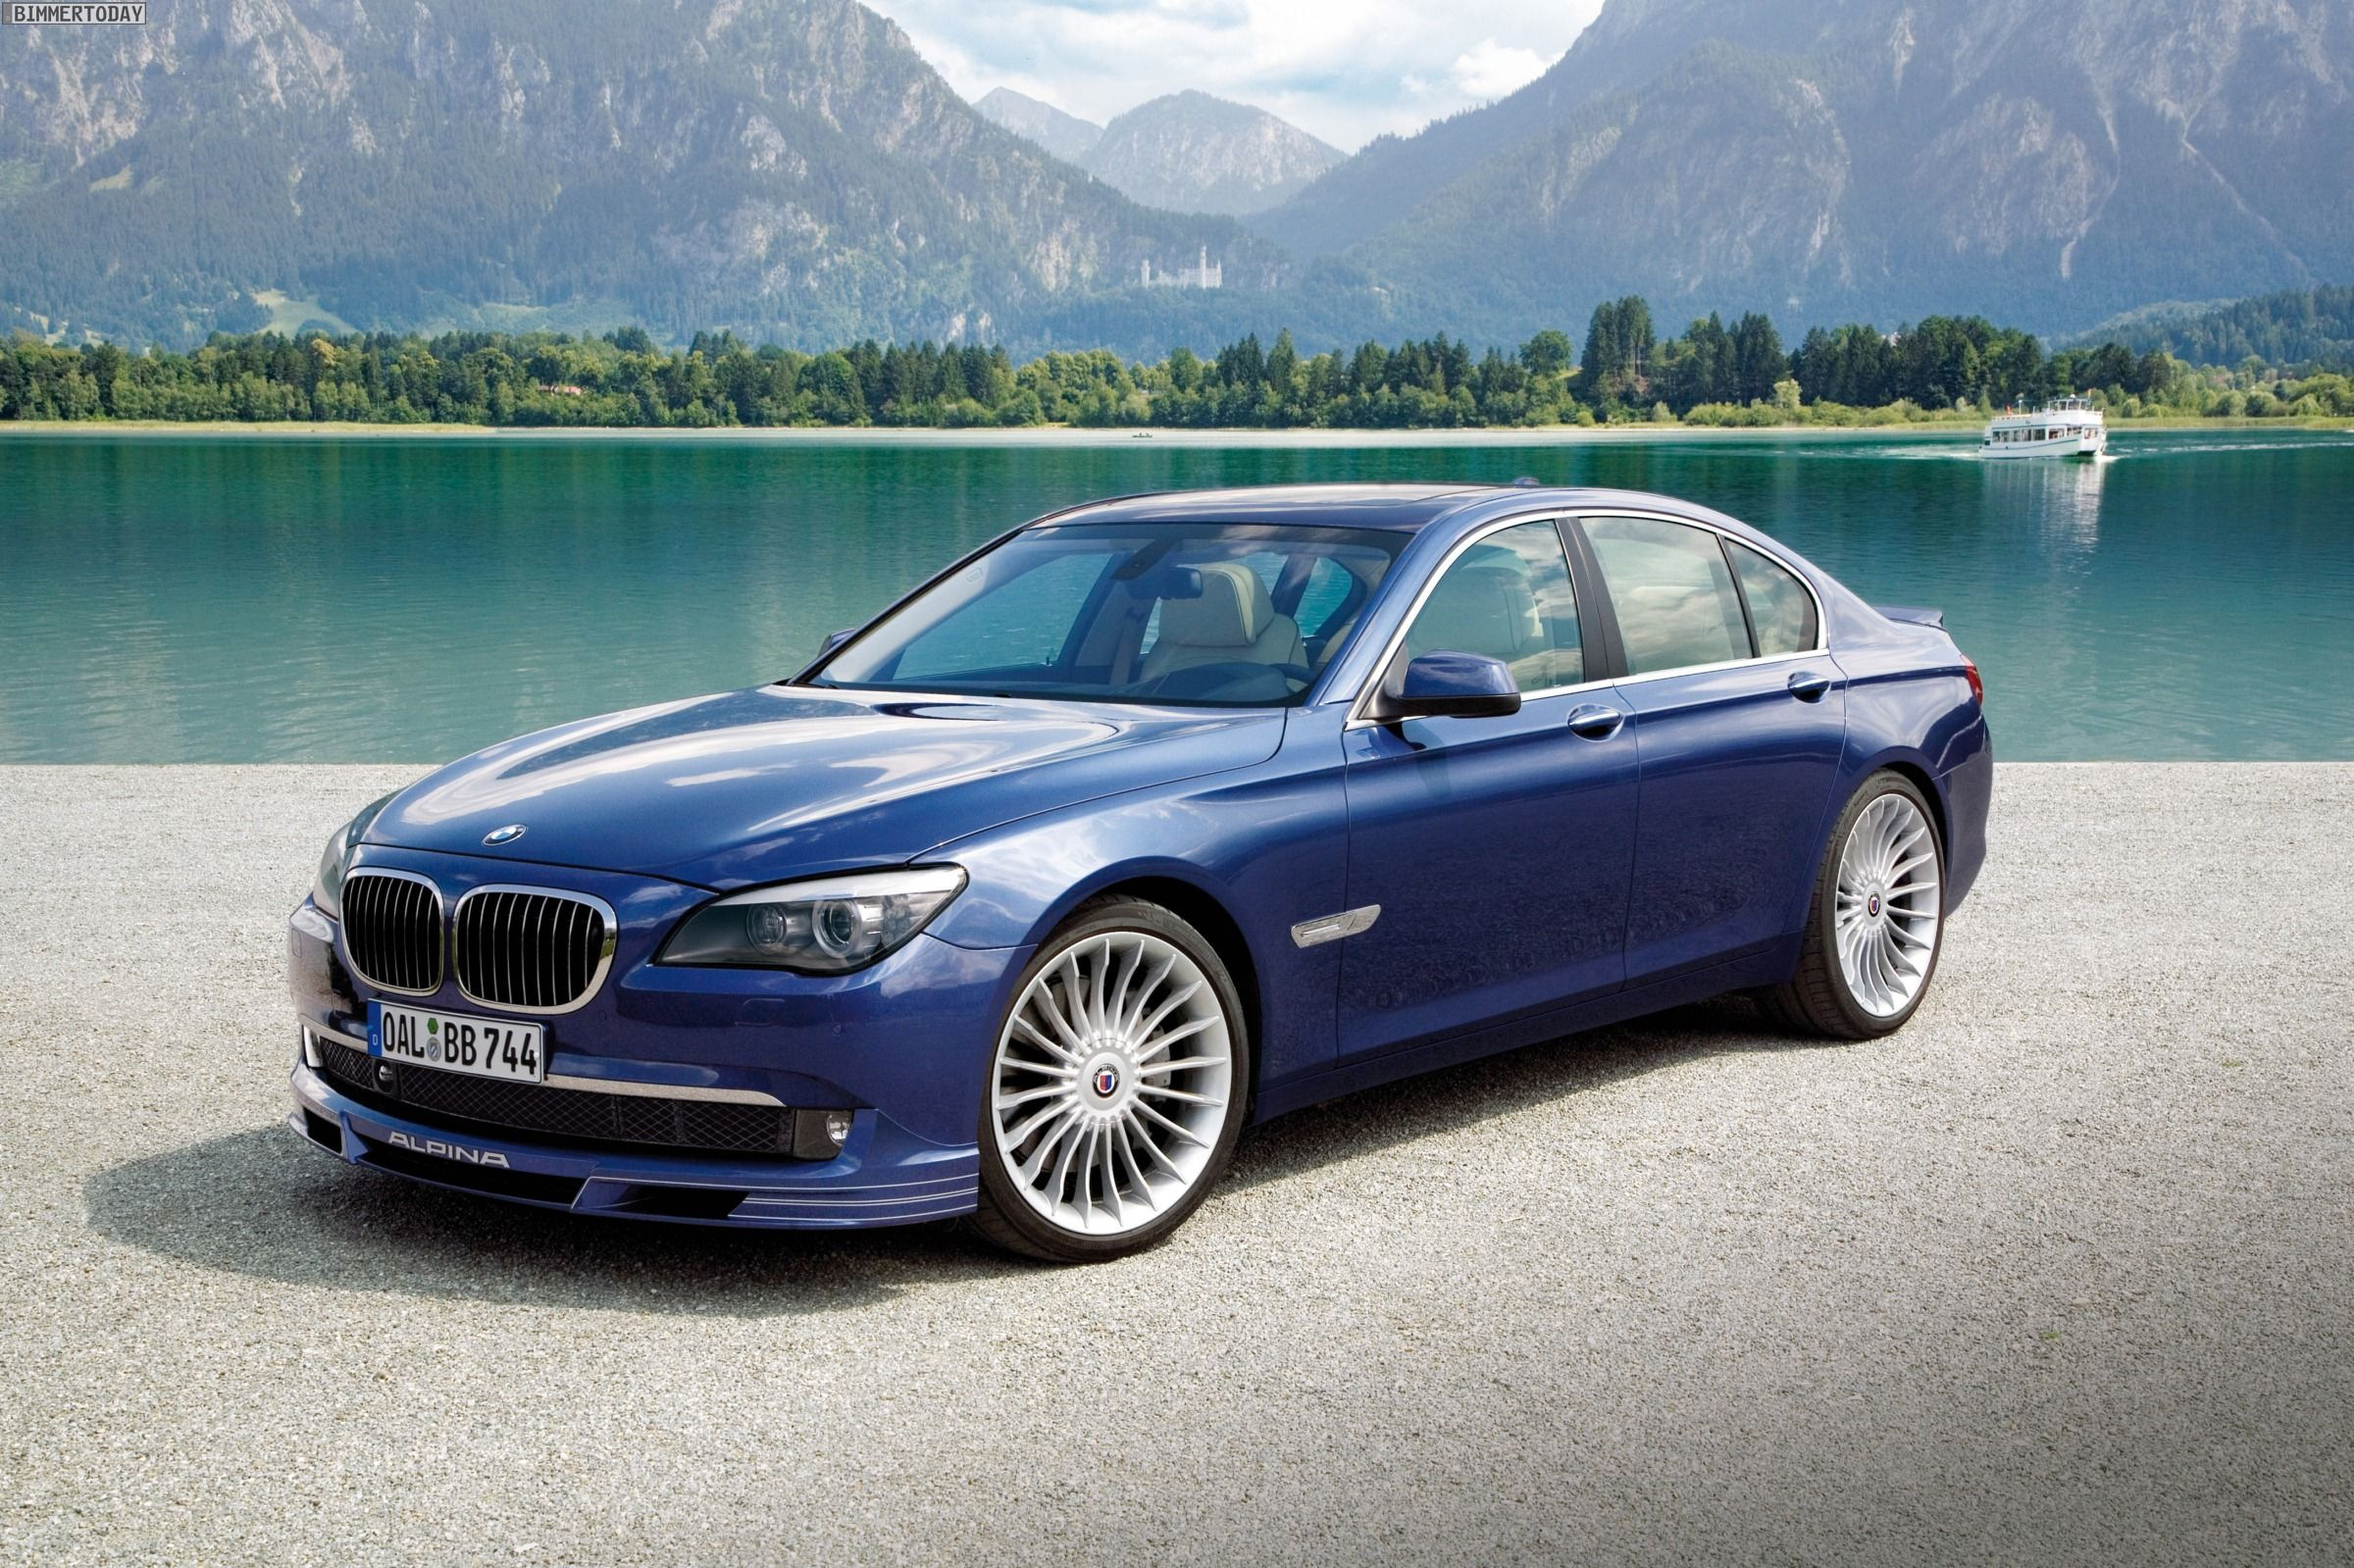 BMW Alpina B7 Biturbo F01 F02 Wallpaper 02